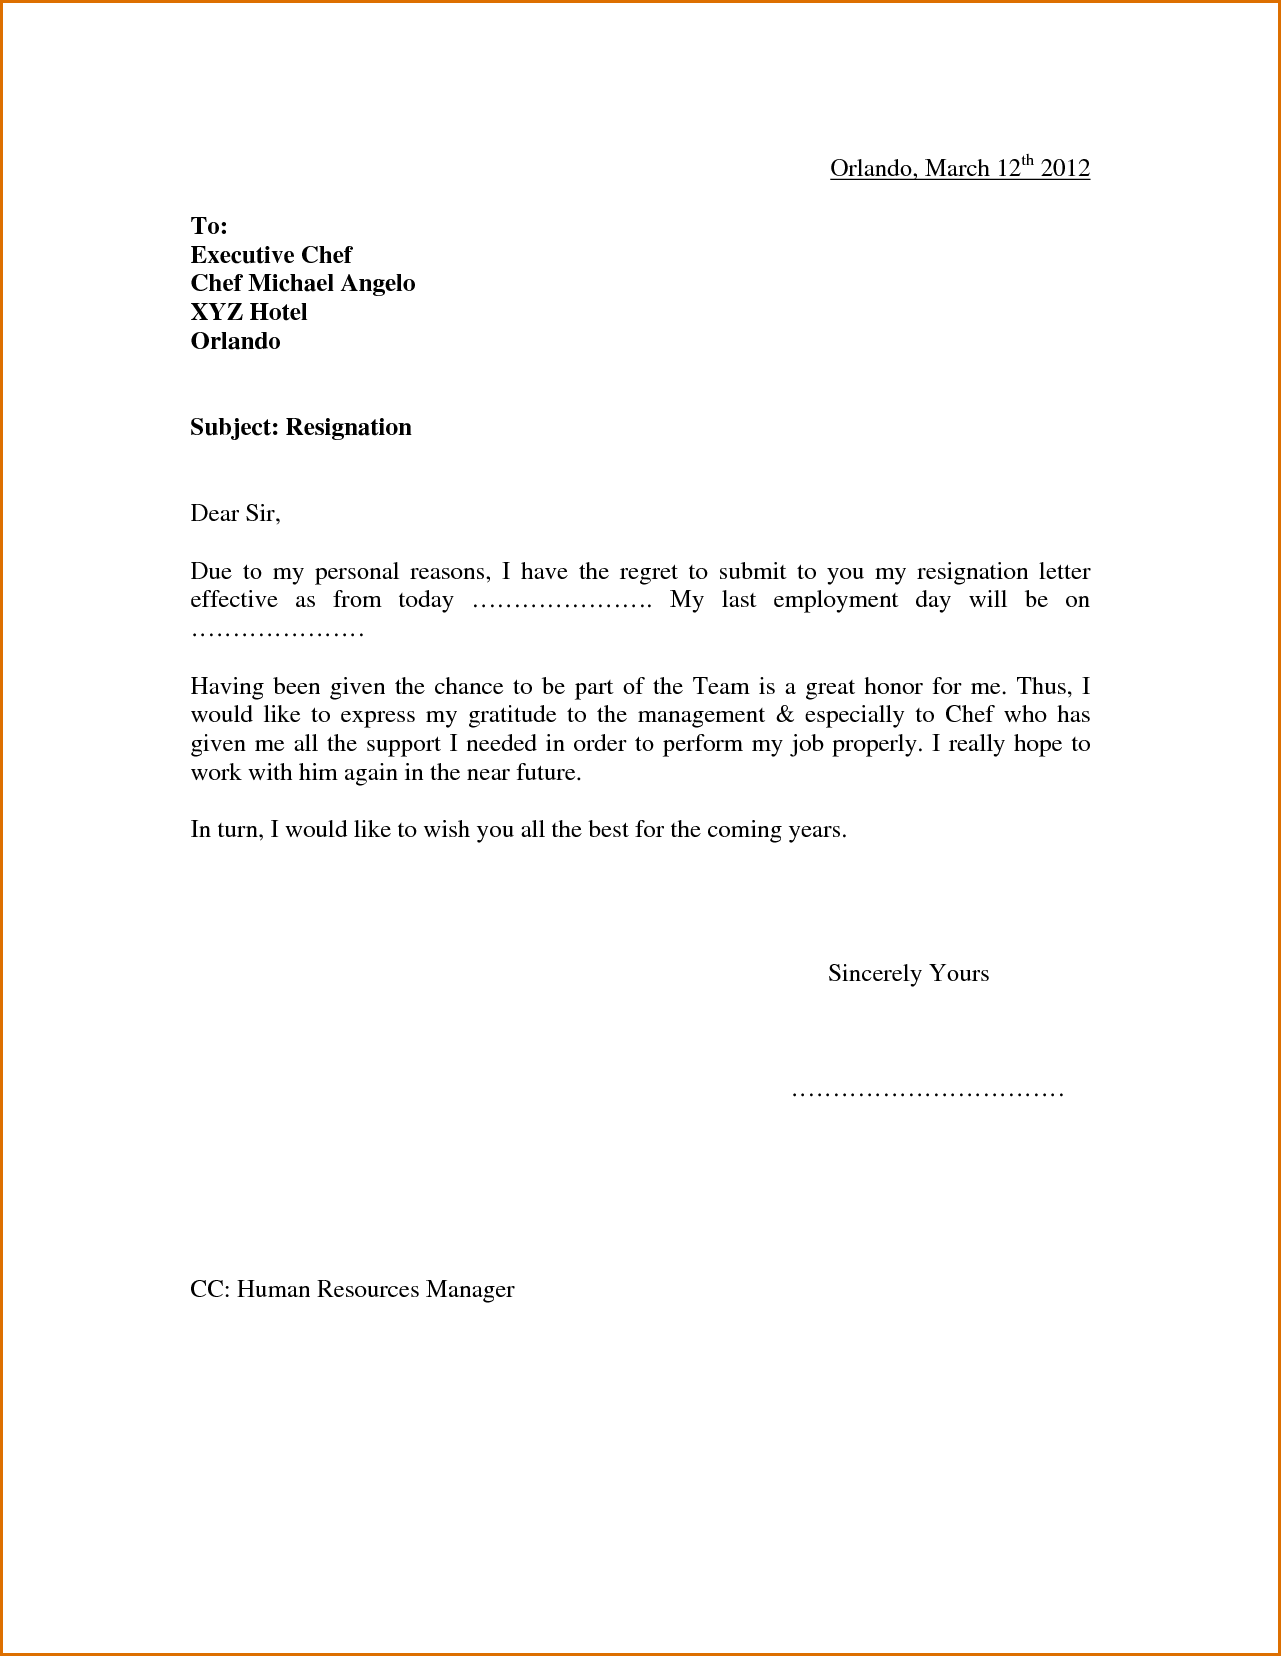 resignation letter samples resignation letters samples 1650 middot 53 kb middot png sample resignation letter due to personal